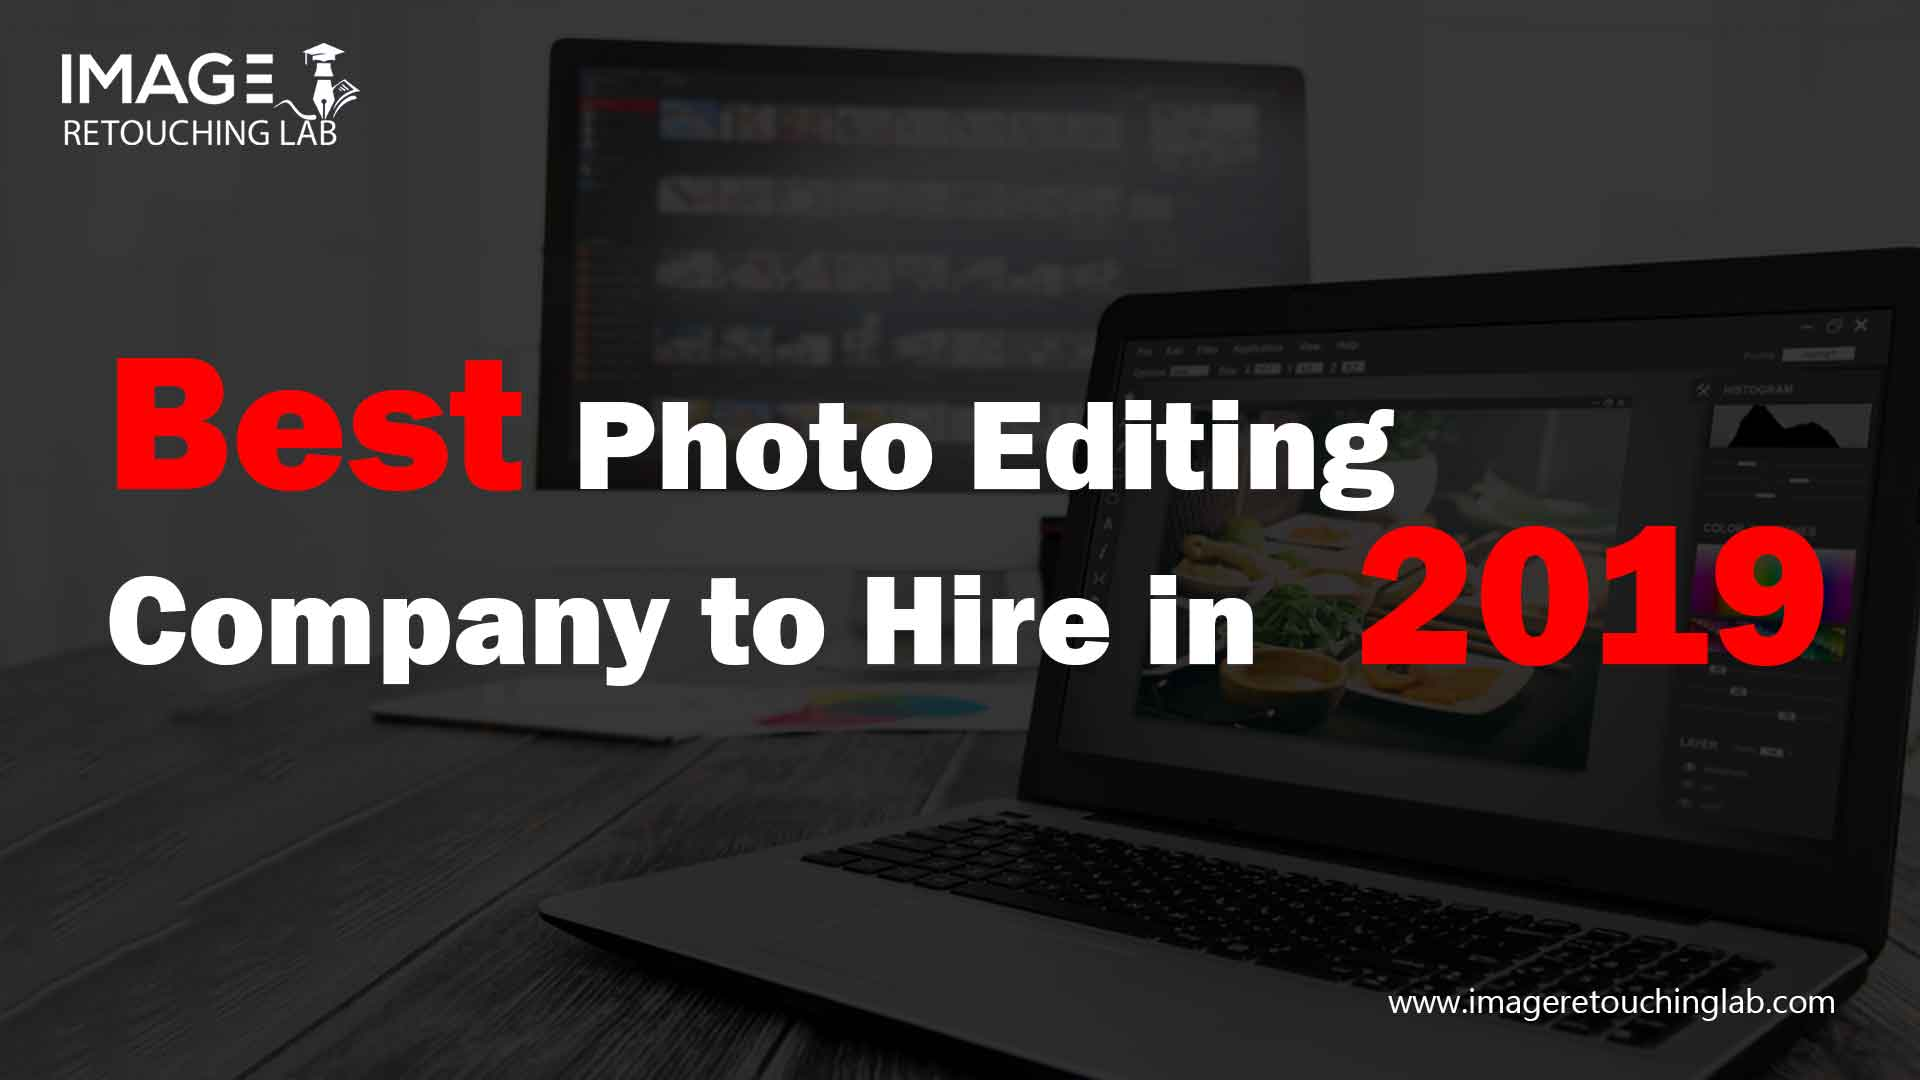 Best Photo Editing Company to Hire in 2019